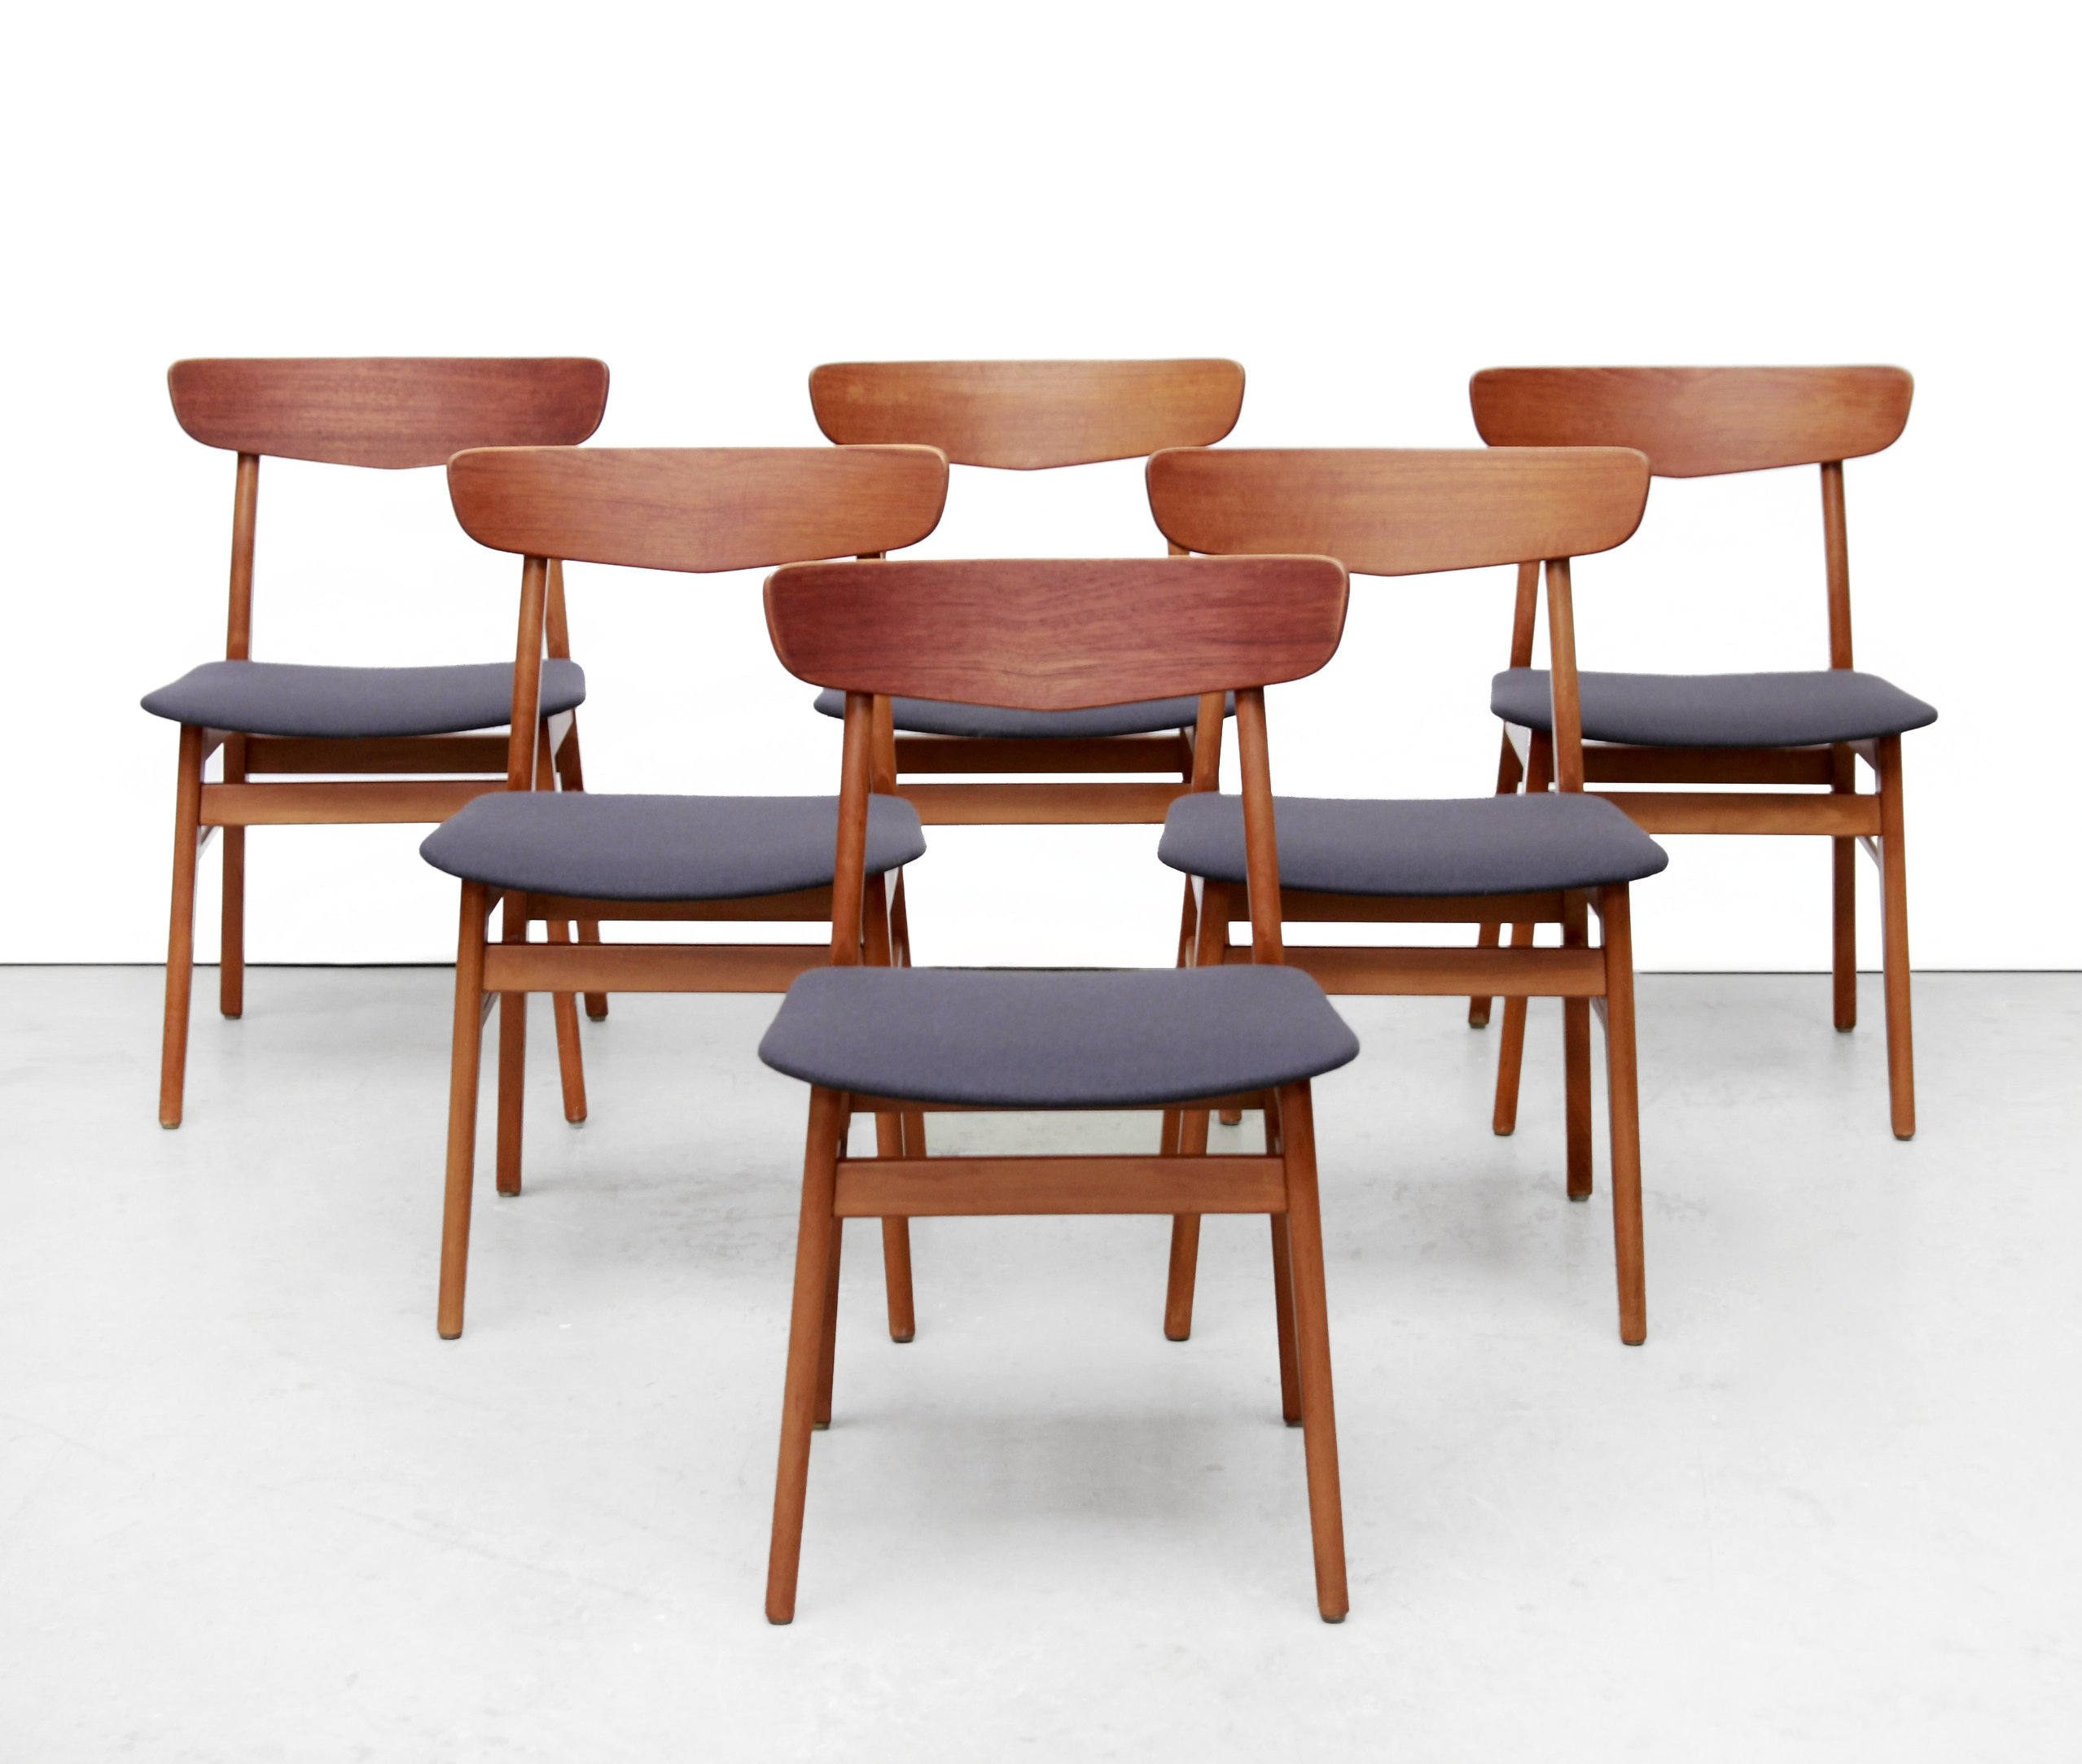 Set Of 6 Danish Designer Dining Chairs From Farstrup In Teak